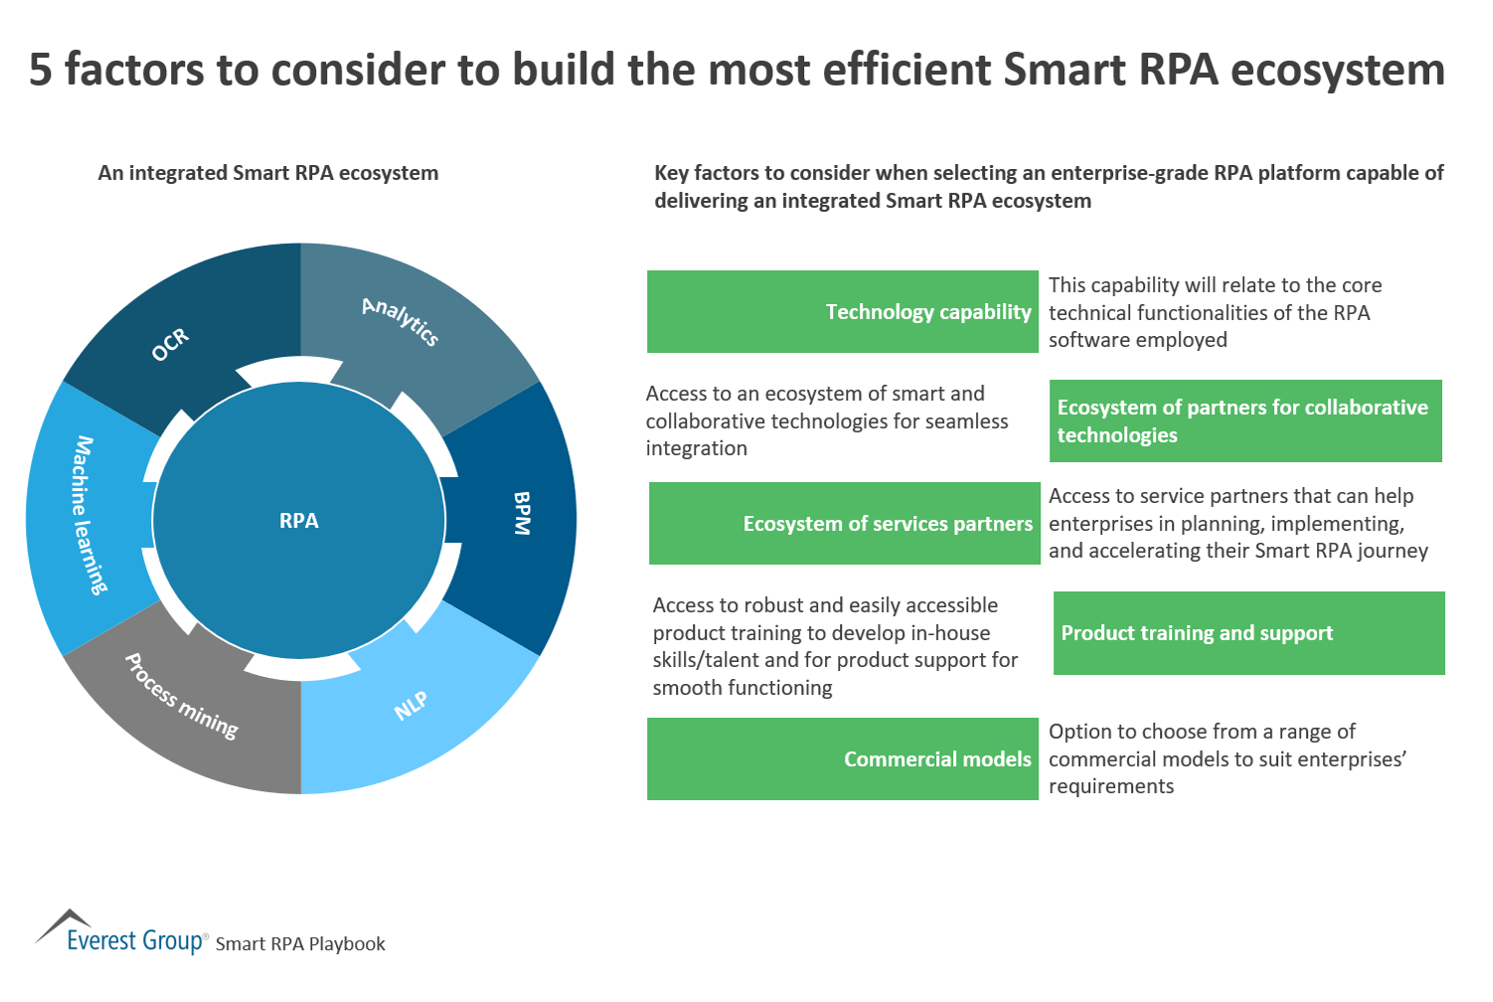 5 factors to consider to build the most efficient Smart RPA ecosystem